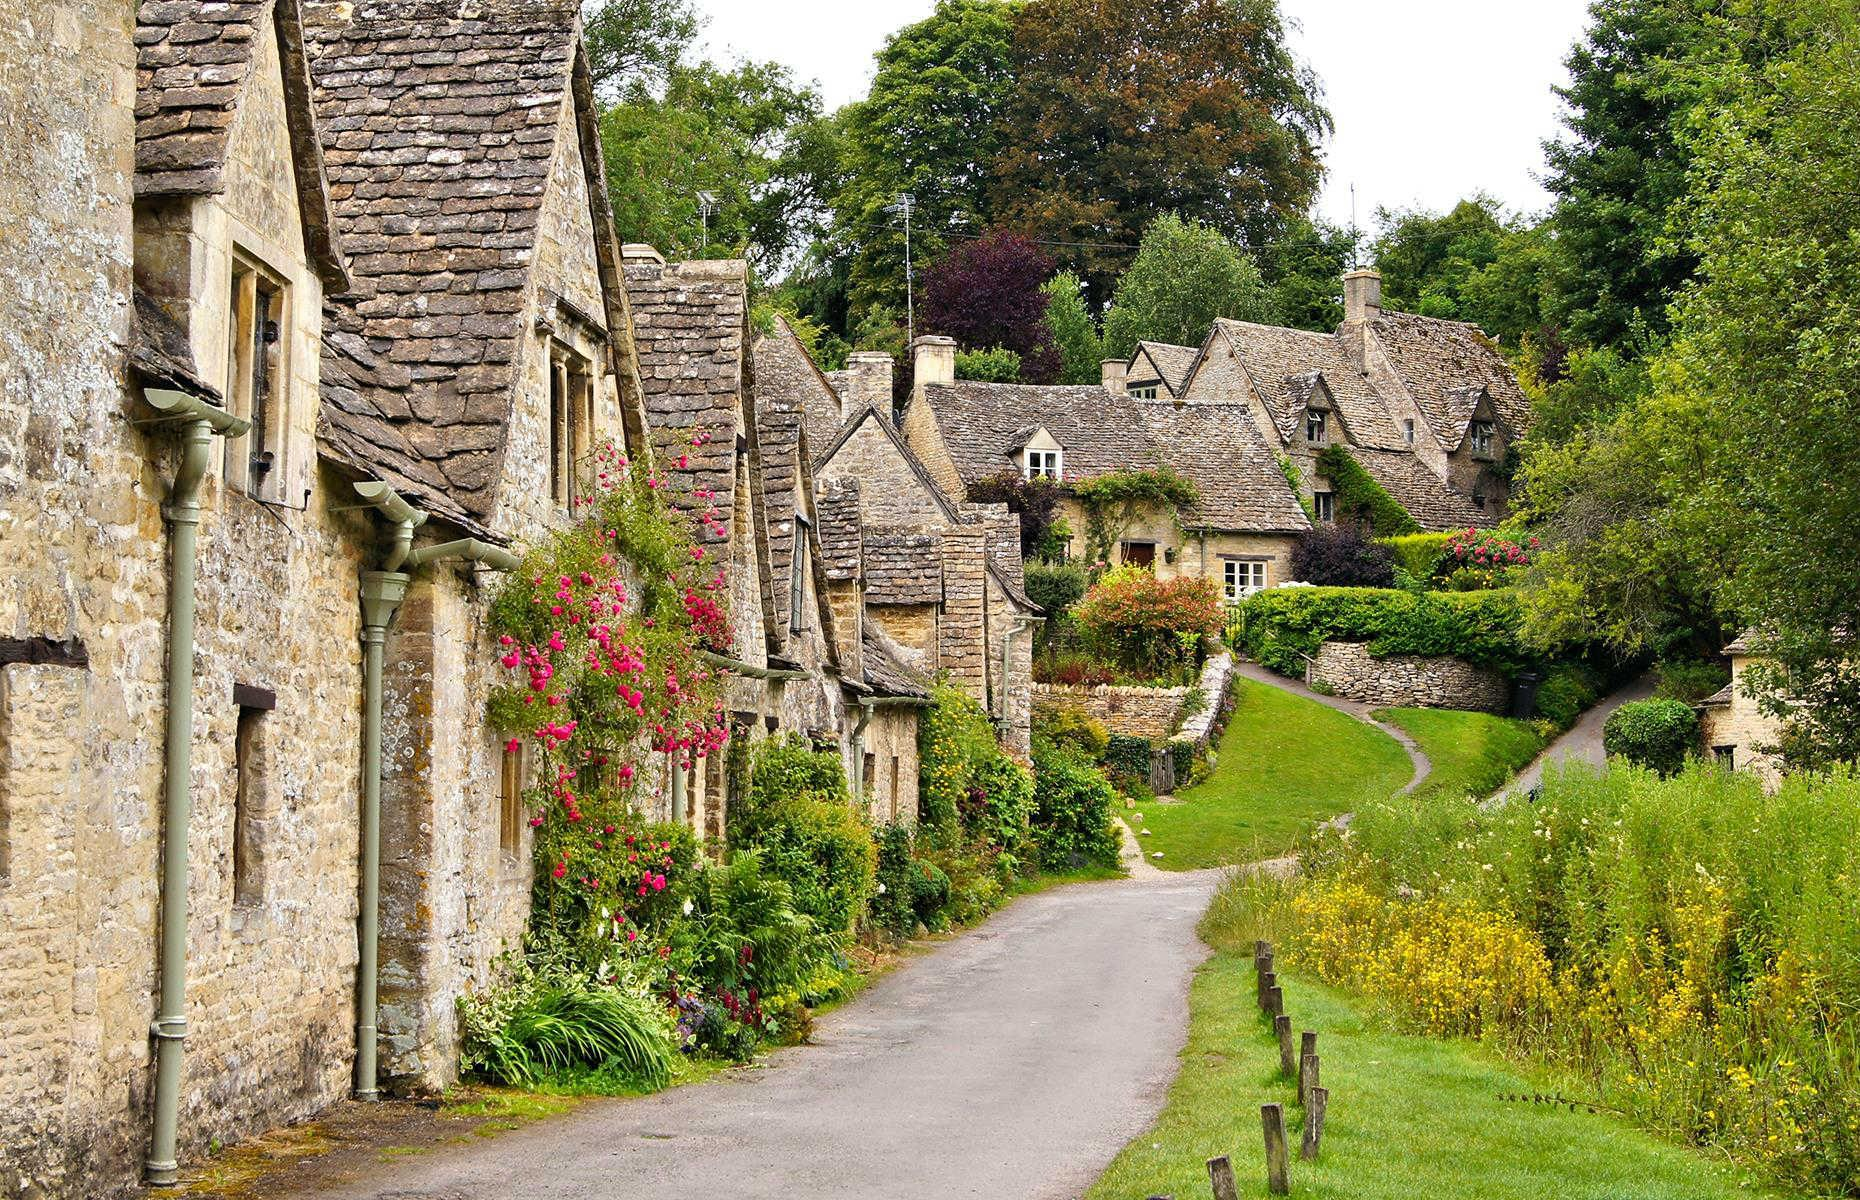 Slide 6 of 51: English writer and designer William Morris once declared Bibury the most beautiful village in the country. A hundred or so years later the sentiment certainly seems to stand. Located in the Cotswolds, an area defined by rolling hills and green meadows, Bibury is picture-perfect. Arlington Row (pictured), a line of weavers' cottages, is the prettiest sight, if not the most famous, in Bibury. Discover more of the UK's prettiest small towns and villages.